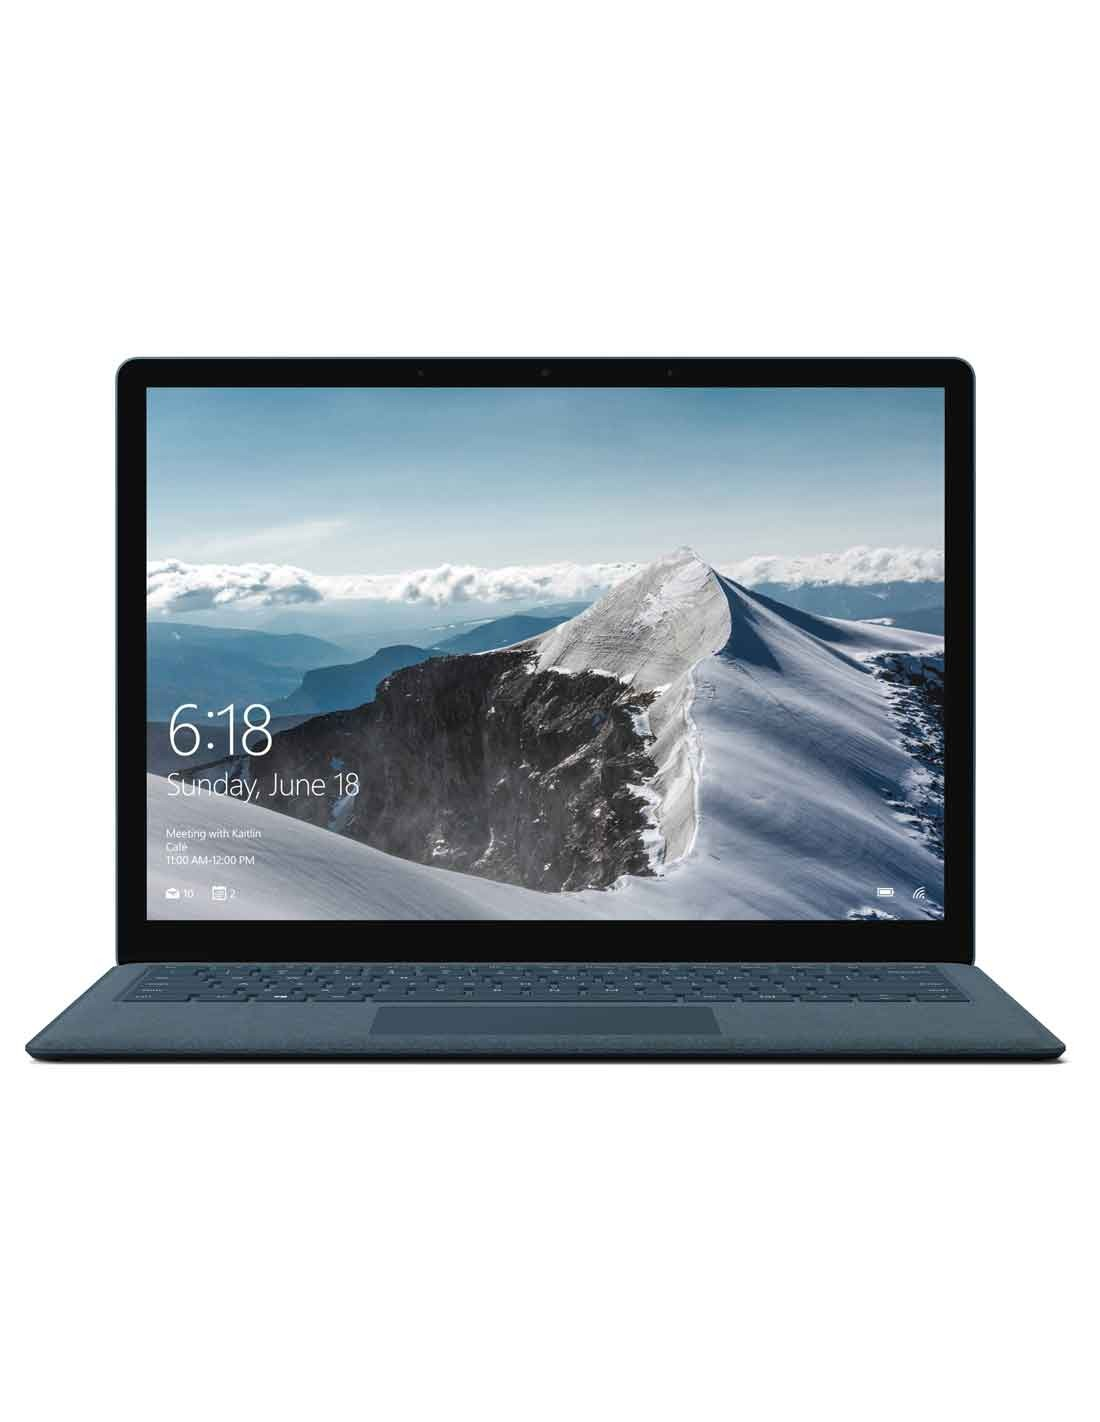 Microsoft Surface Laptop Cobalt Blue at the cheapest price and free delivery in Dubai